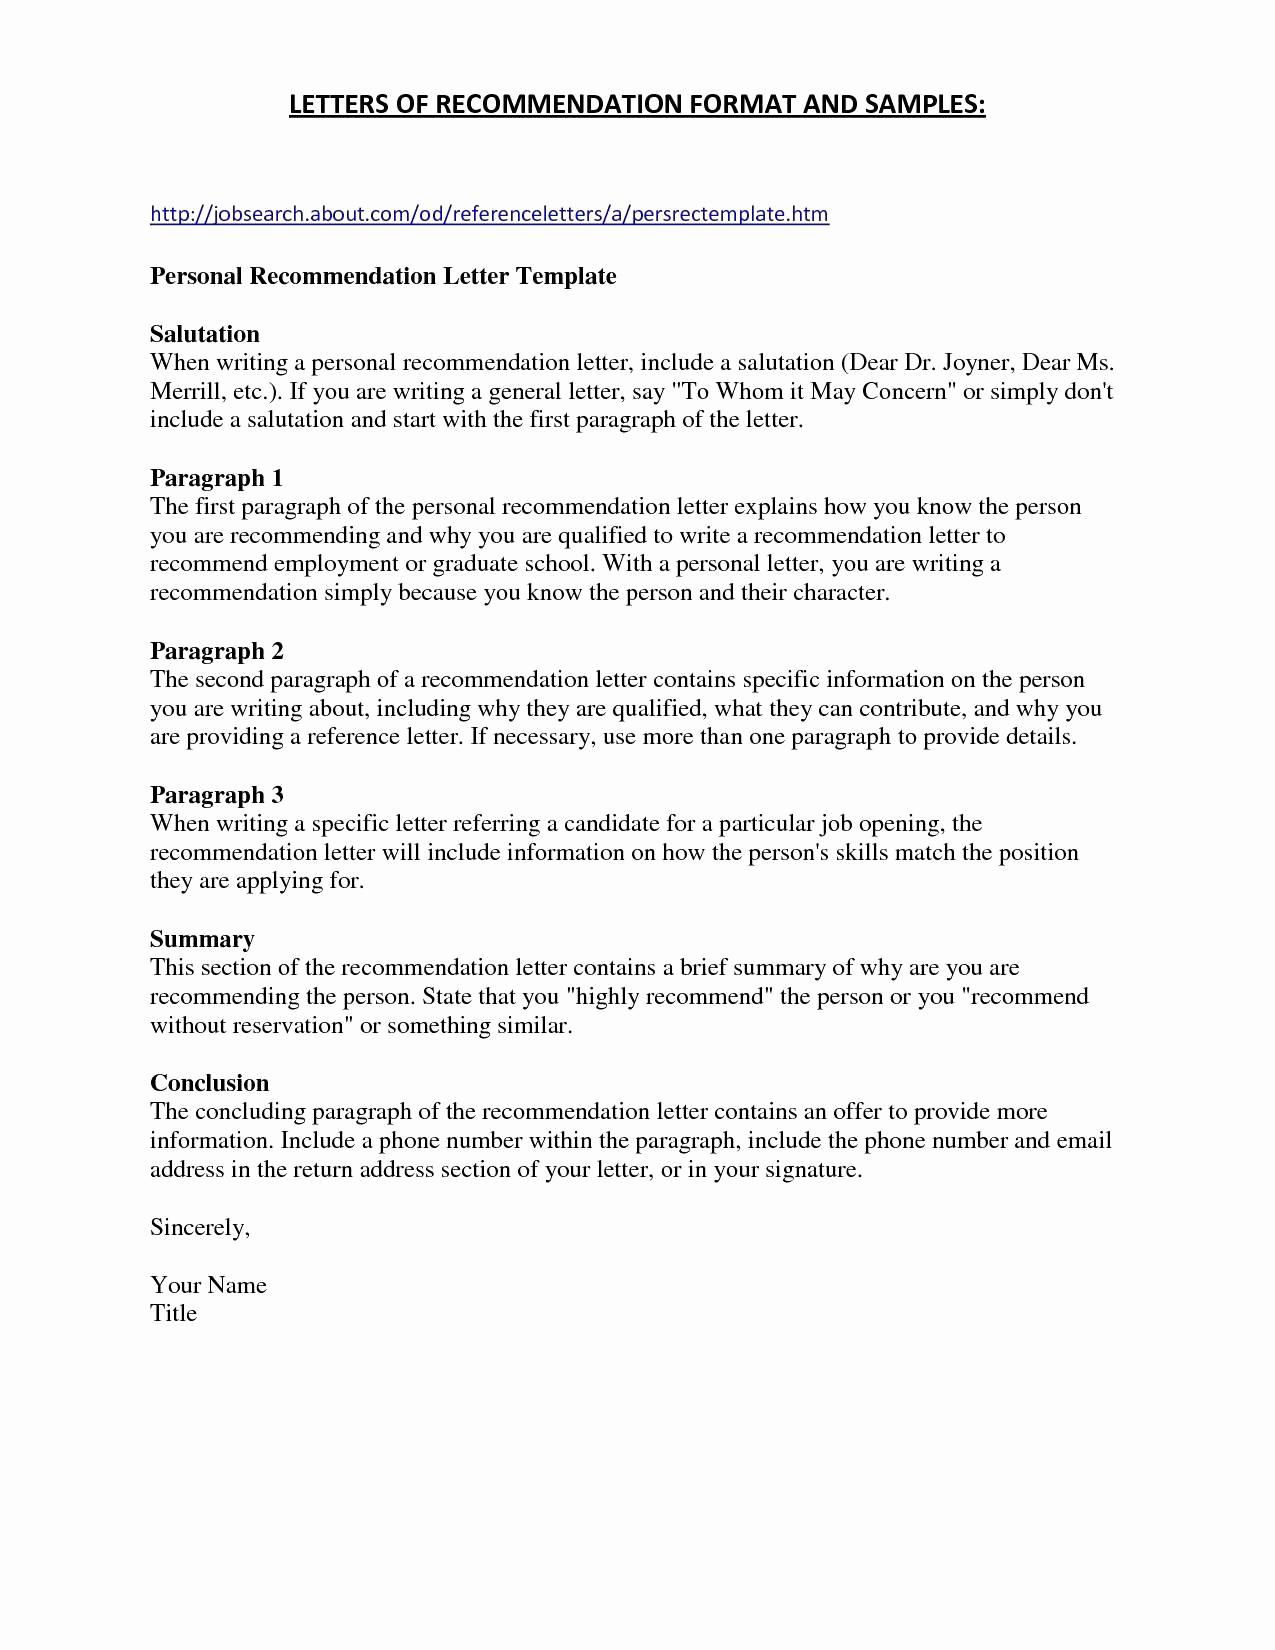 Generic Cover Letter Template Samples